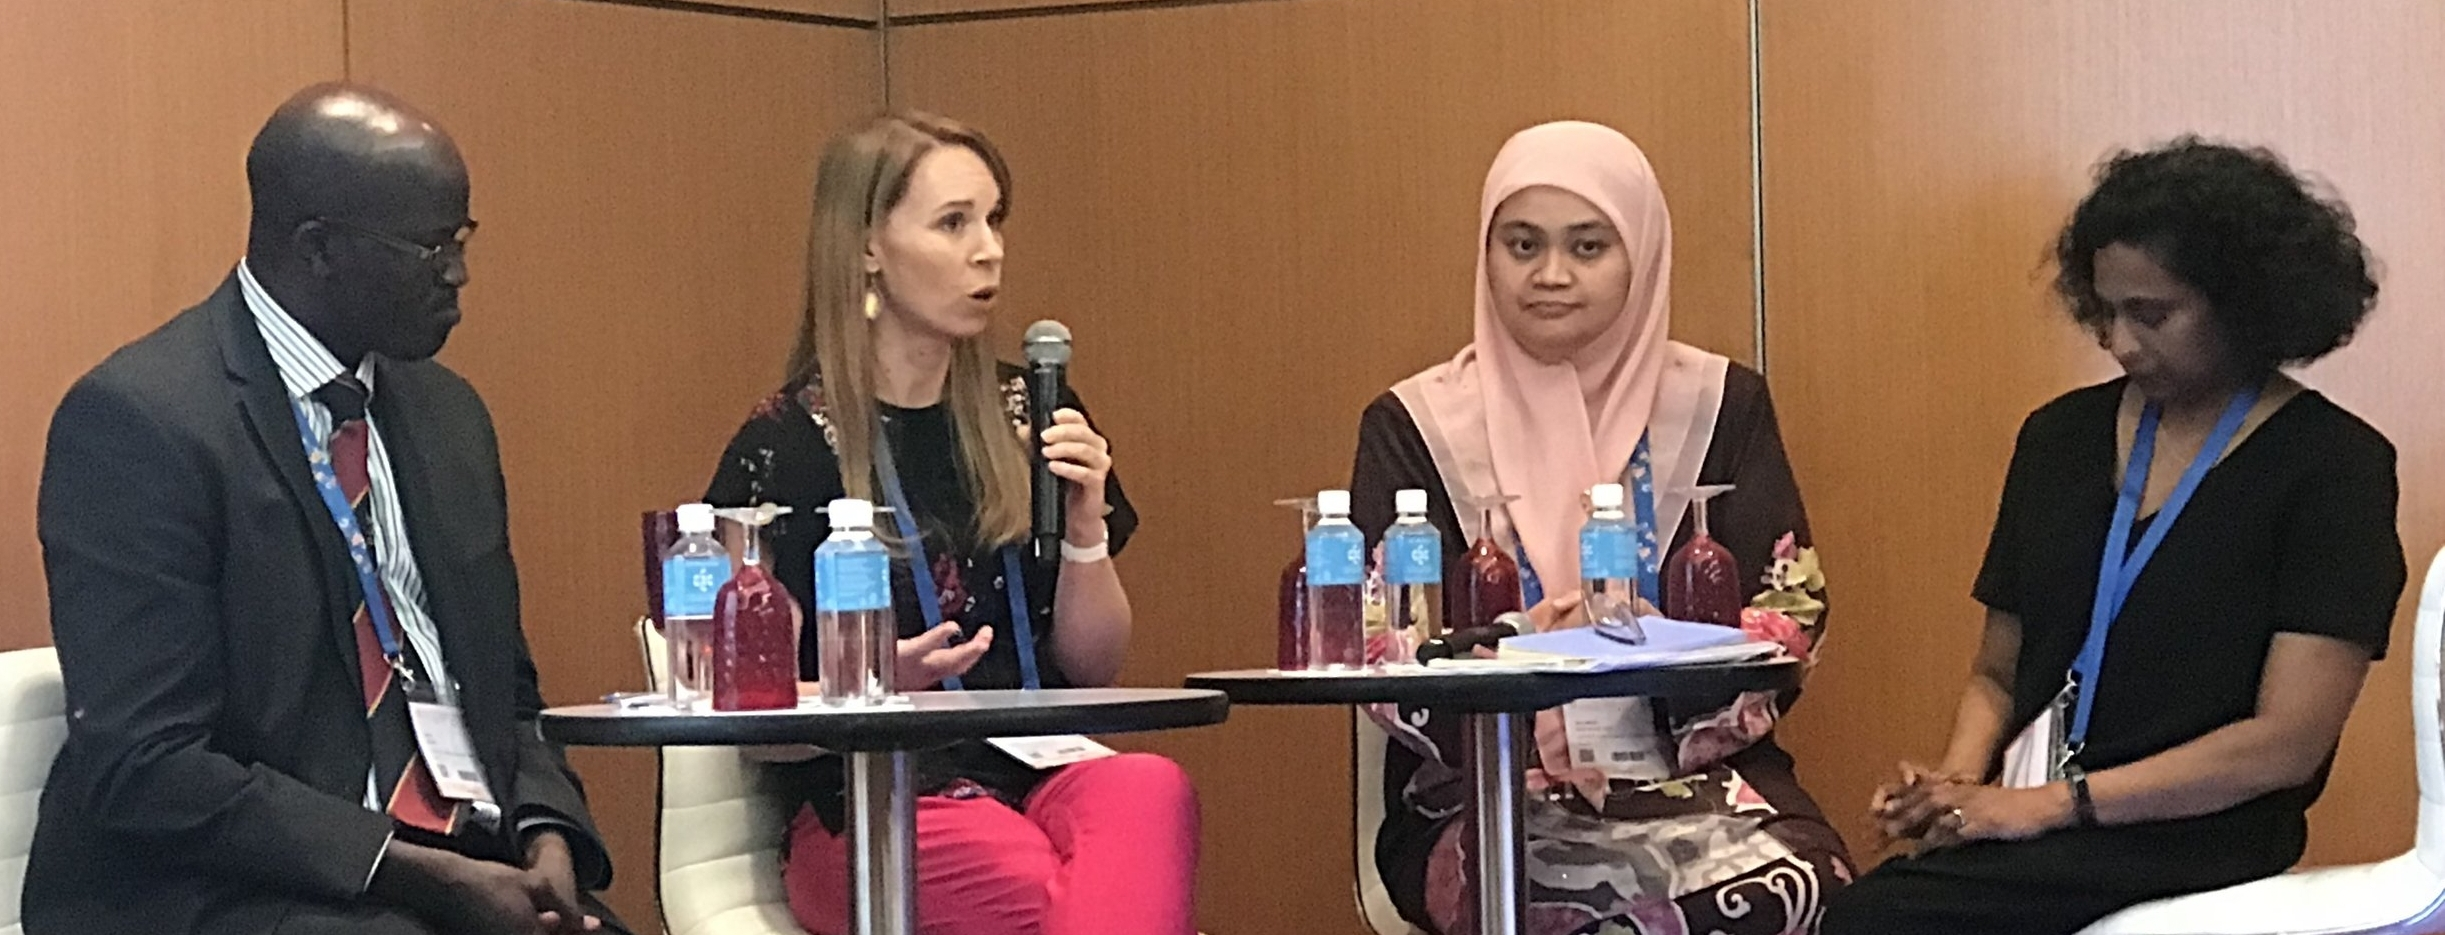 Left to Right: Dr Amos Mwaka, Makerere University, Uganda; Dr Corrine Ellsworth-Beaumont, Worldwide Breast Cancer, USA; Dr Nur Aishah Mohd Taib, KL, Malaysia; Prof Jennifer Moodley, University of Cape Town, South Africa. Not pictured: Panel chair Jon Emery, University of Melbourne.